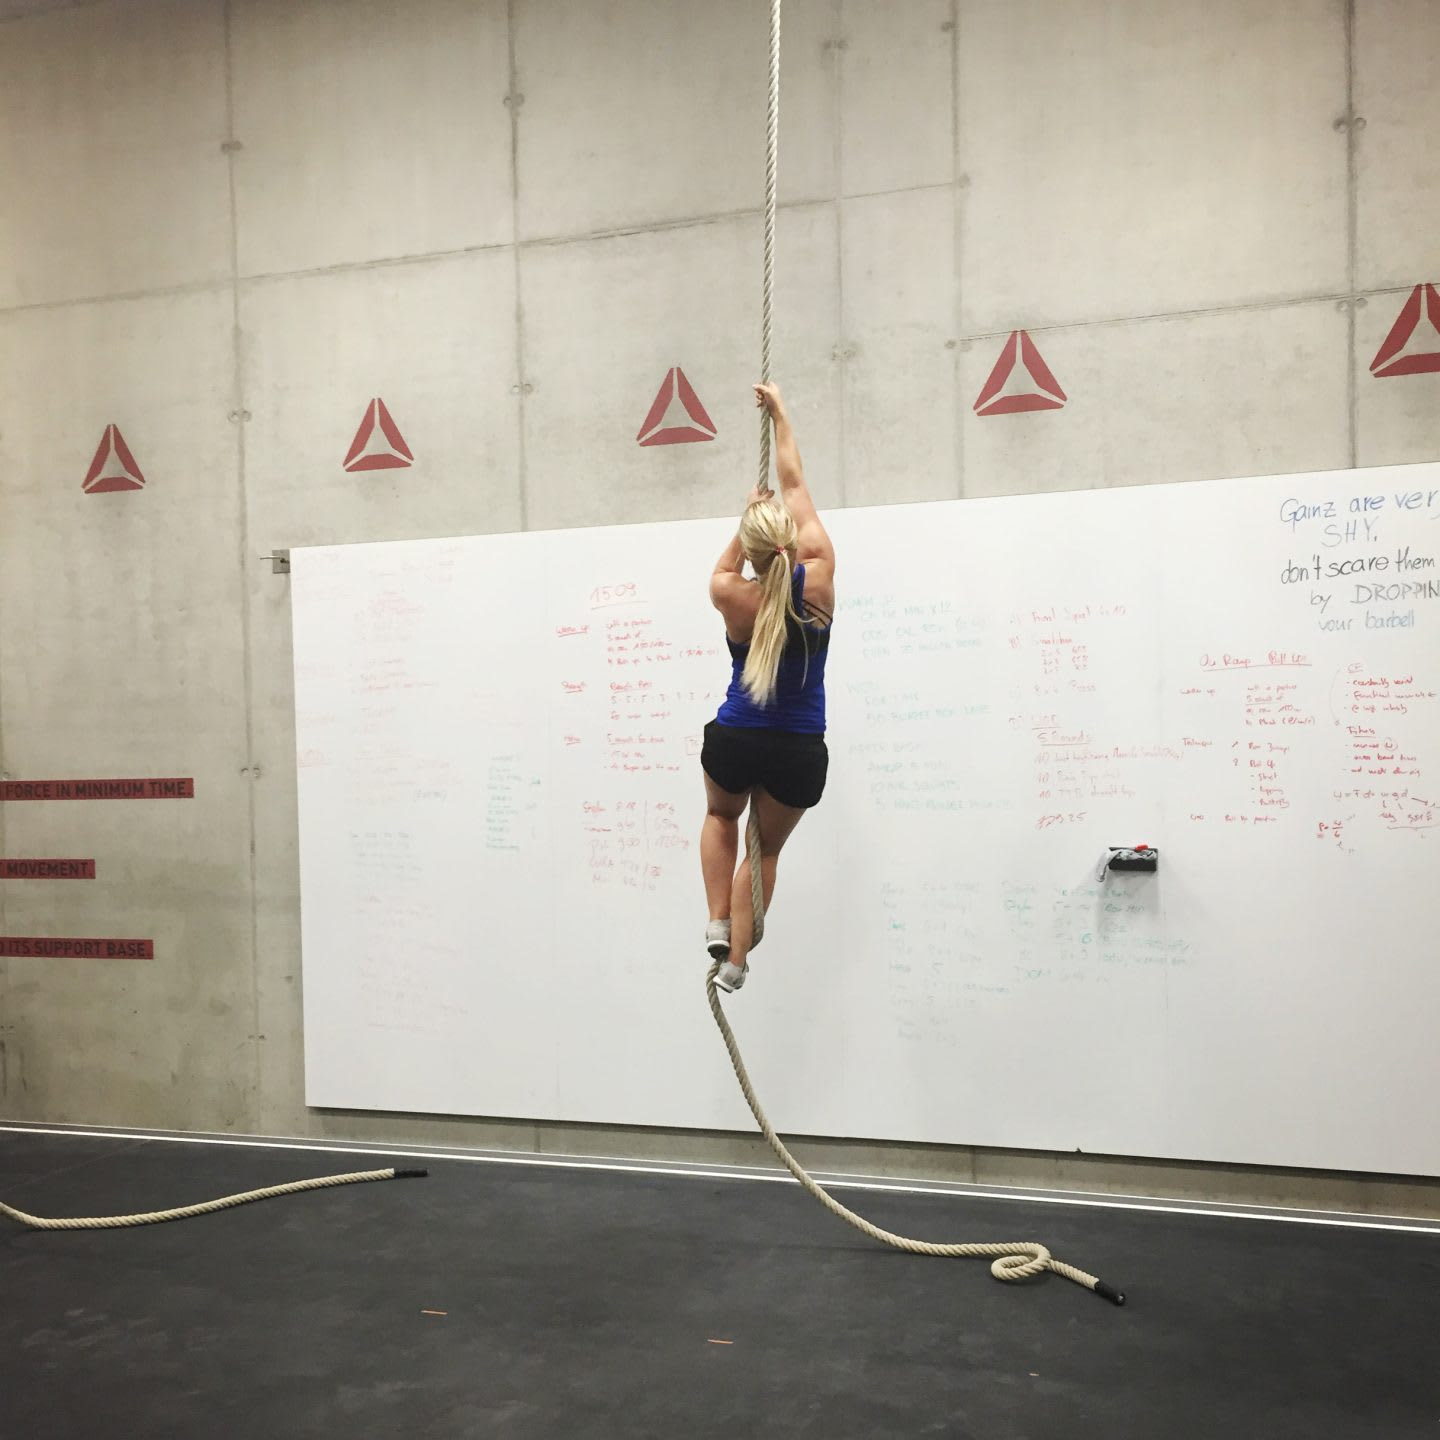 CrossFit girl climbing rope in CrossFit box tough fitness self-confidence letter to my haters